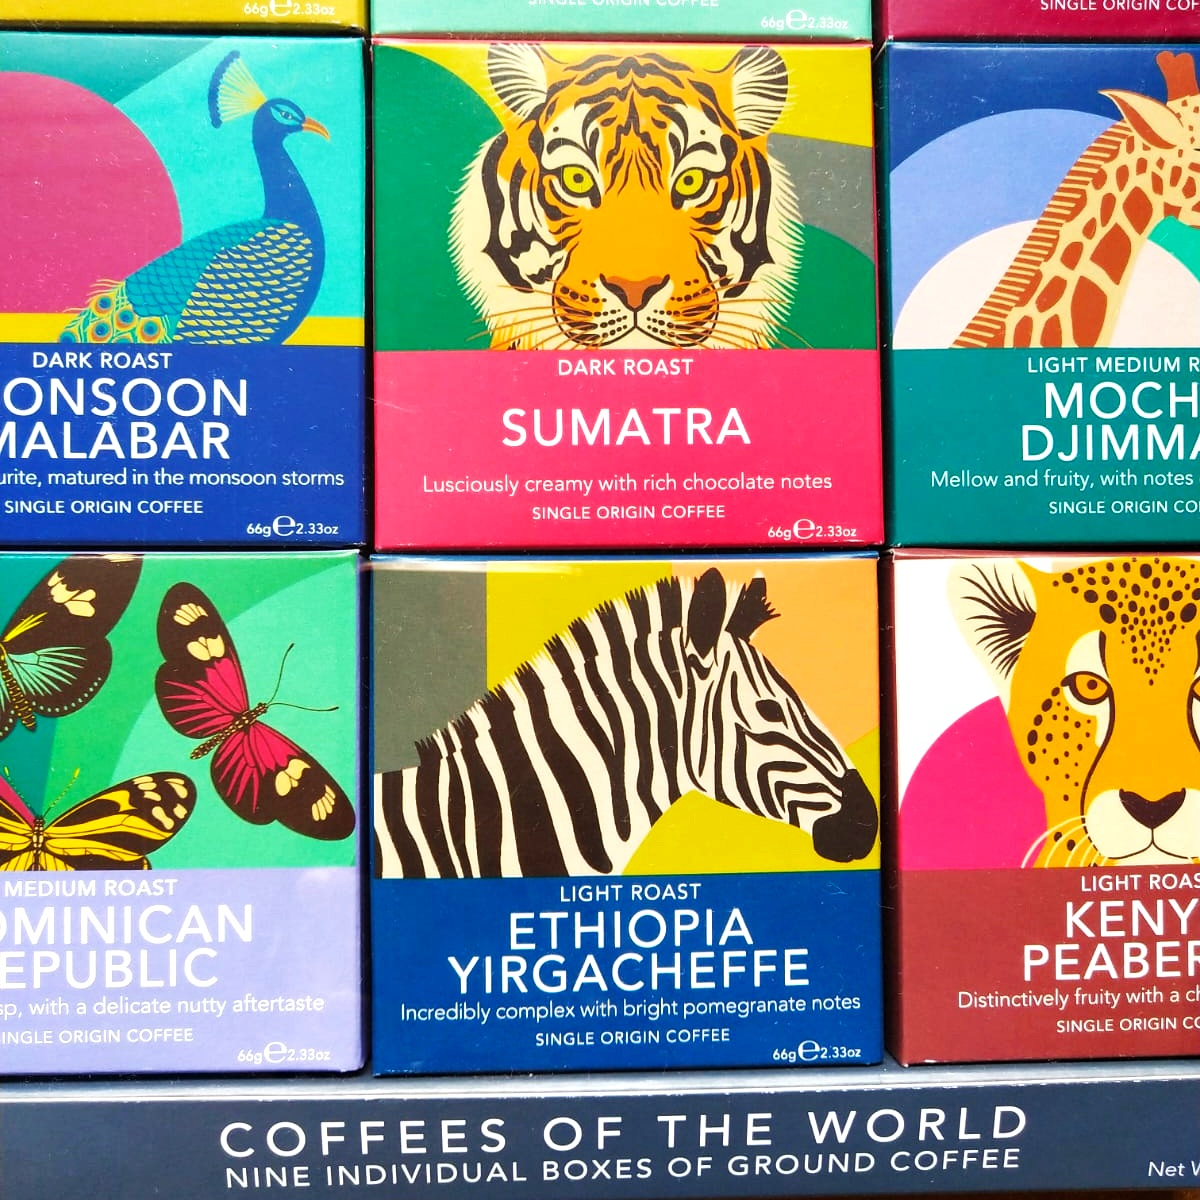 Coffee of the world gift set